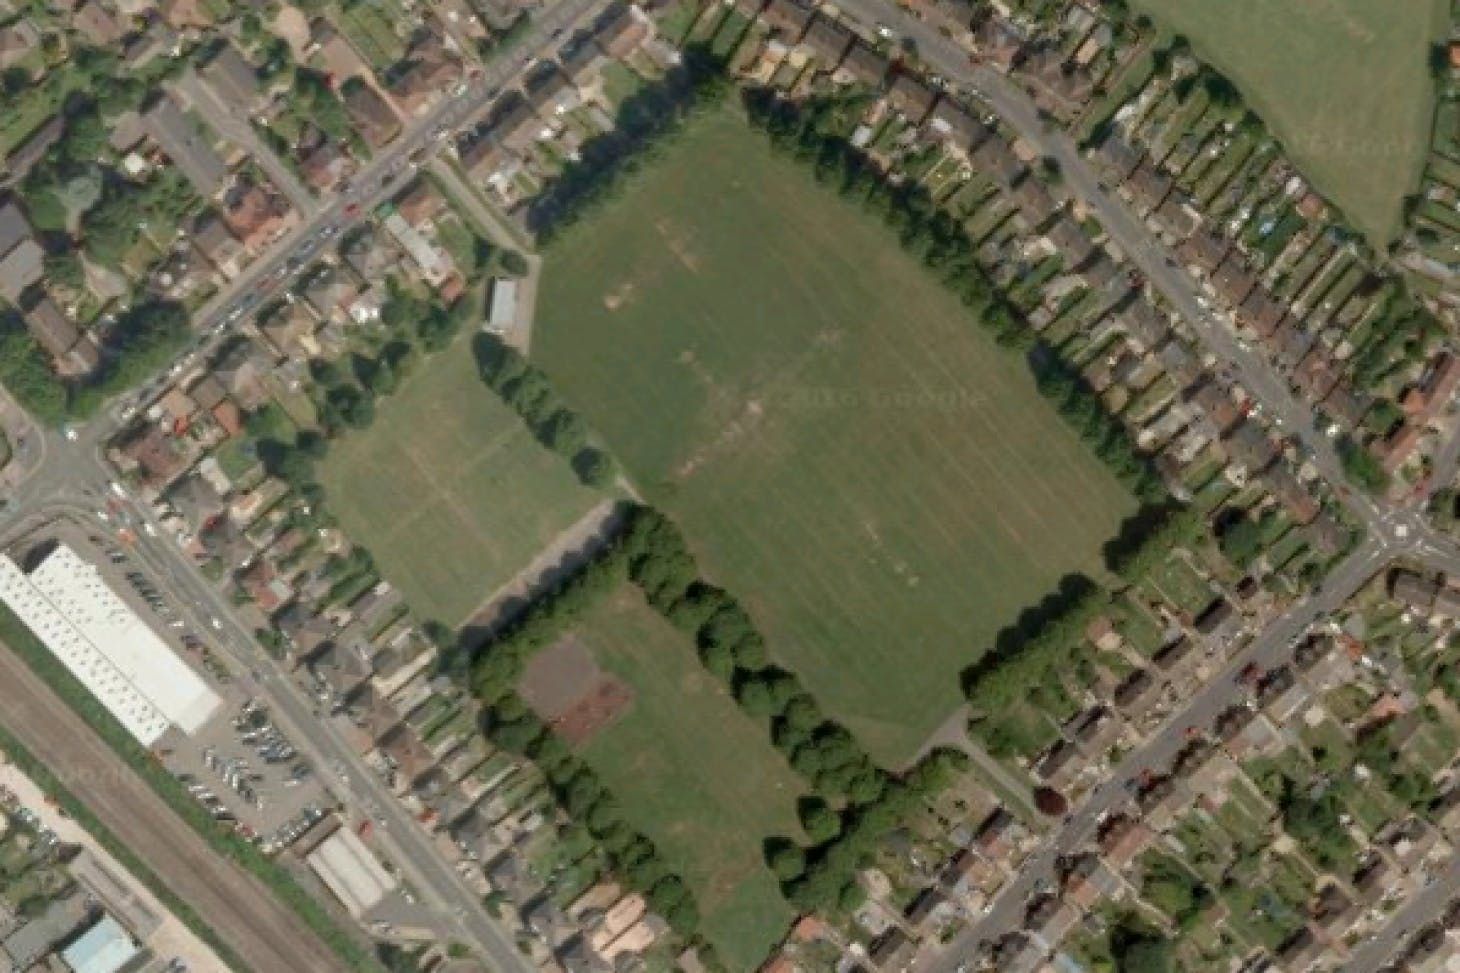 Blundell Road Recreation Ground 11 a side | Grass football pitch